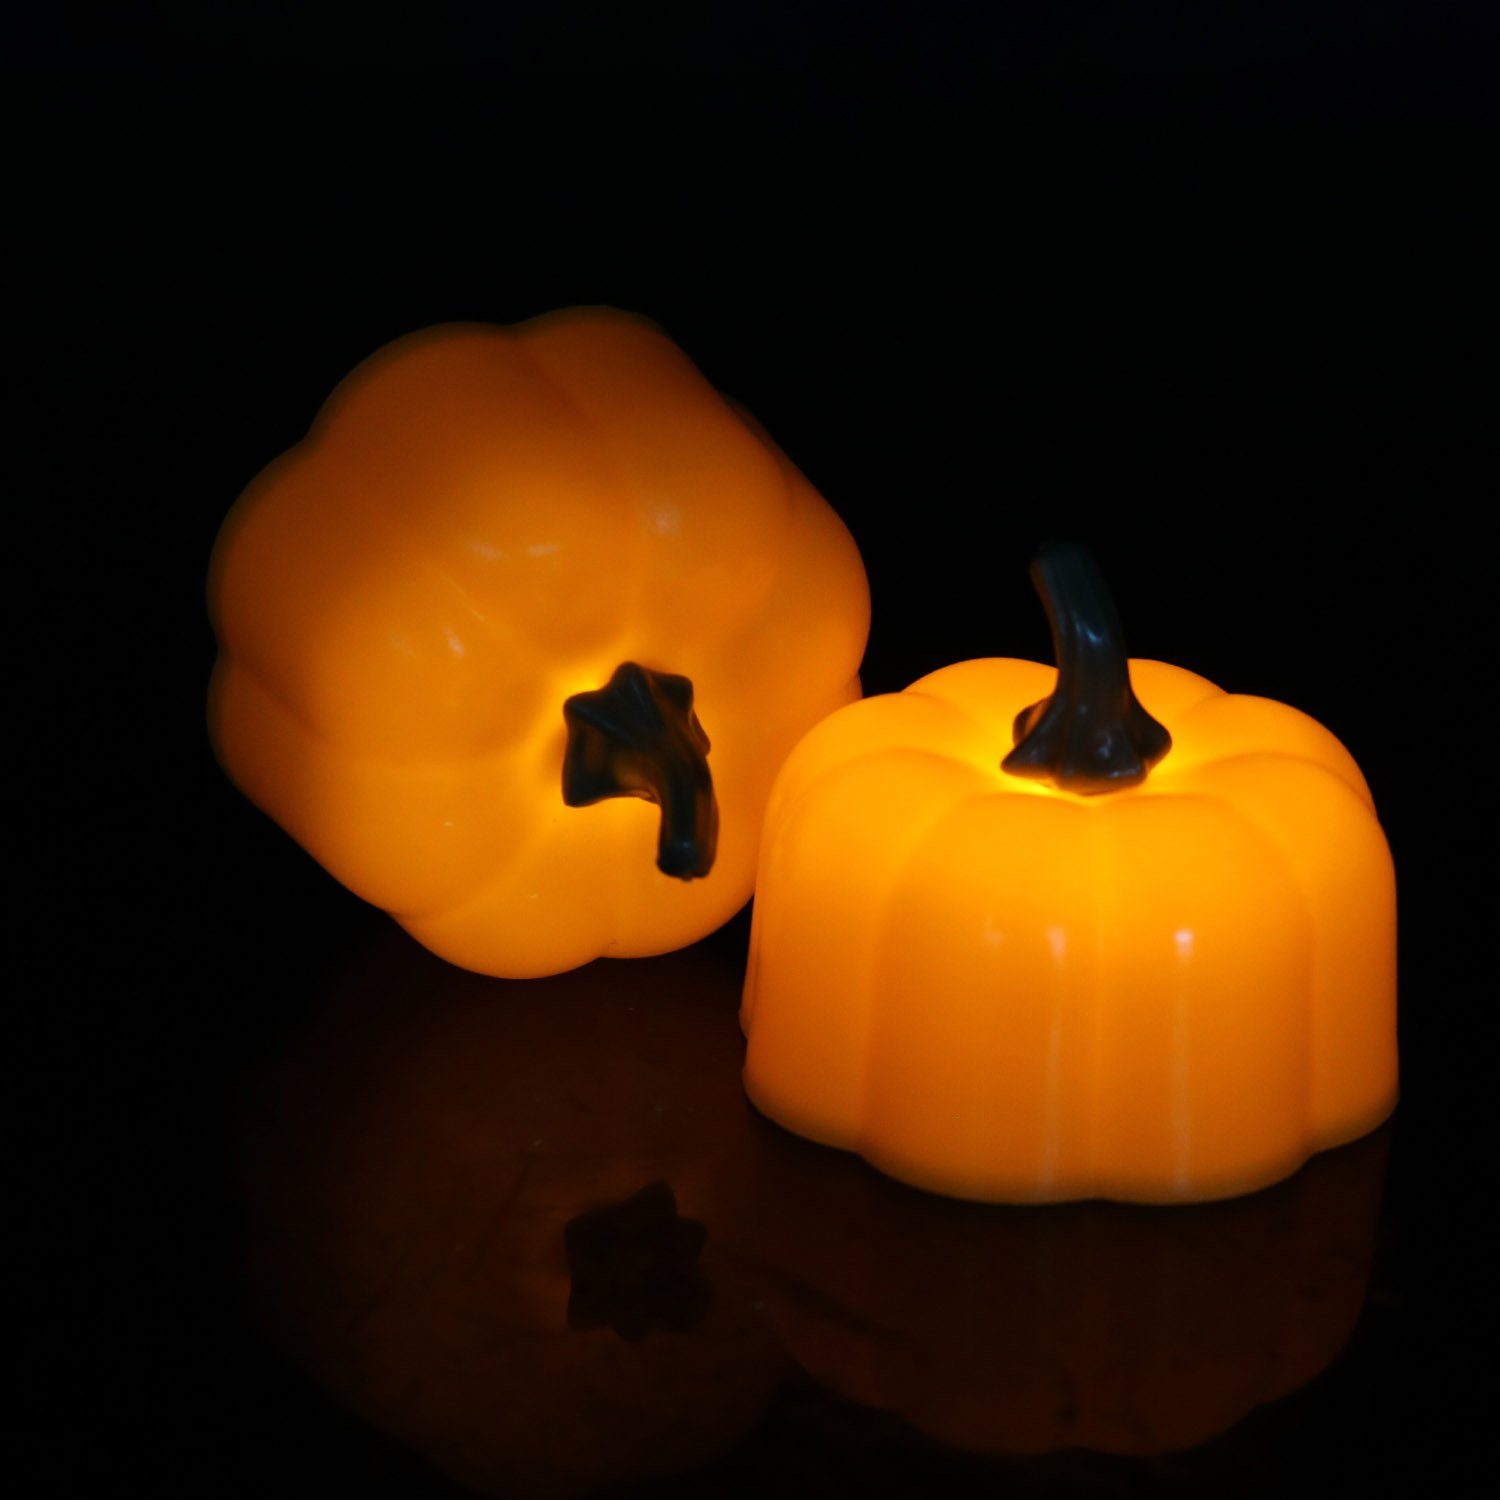 12 Packs, Battery Powered Led Pumpkin Tea Light, Flameless Candle for Halloween, Holiday, Wedding Theme Party, Celebration,Festival,Home Decorations,Warm Yellow Flickering